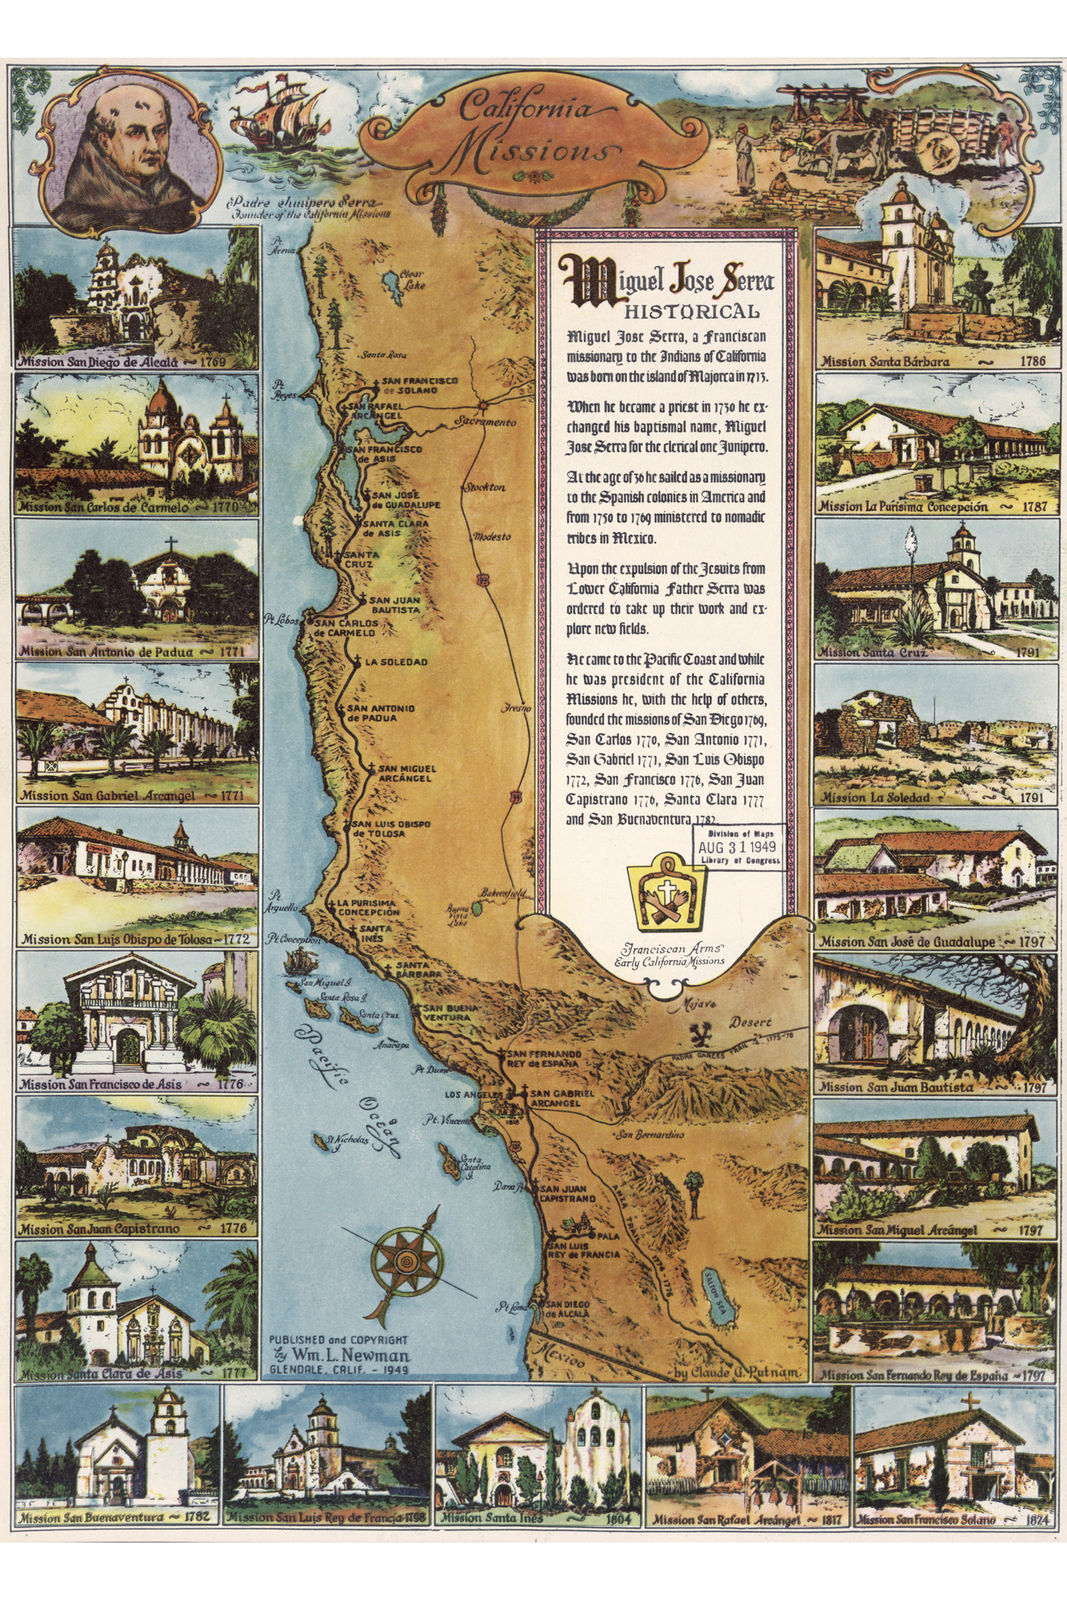 California Missions Antique Pictorial Map